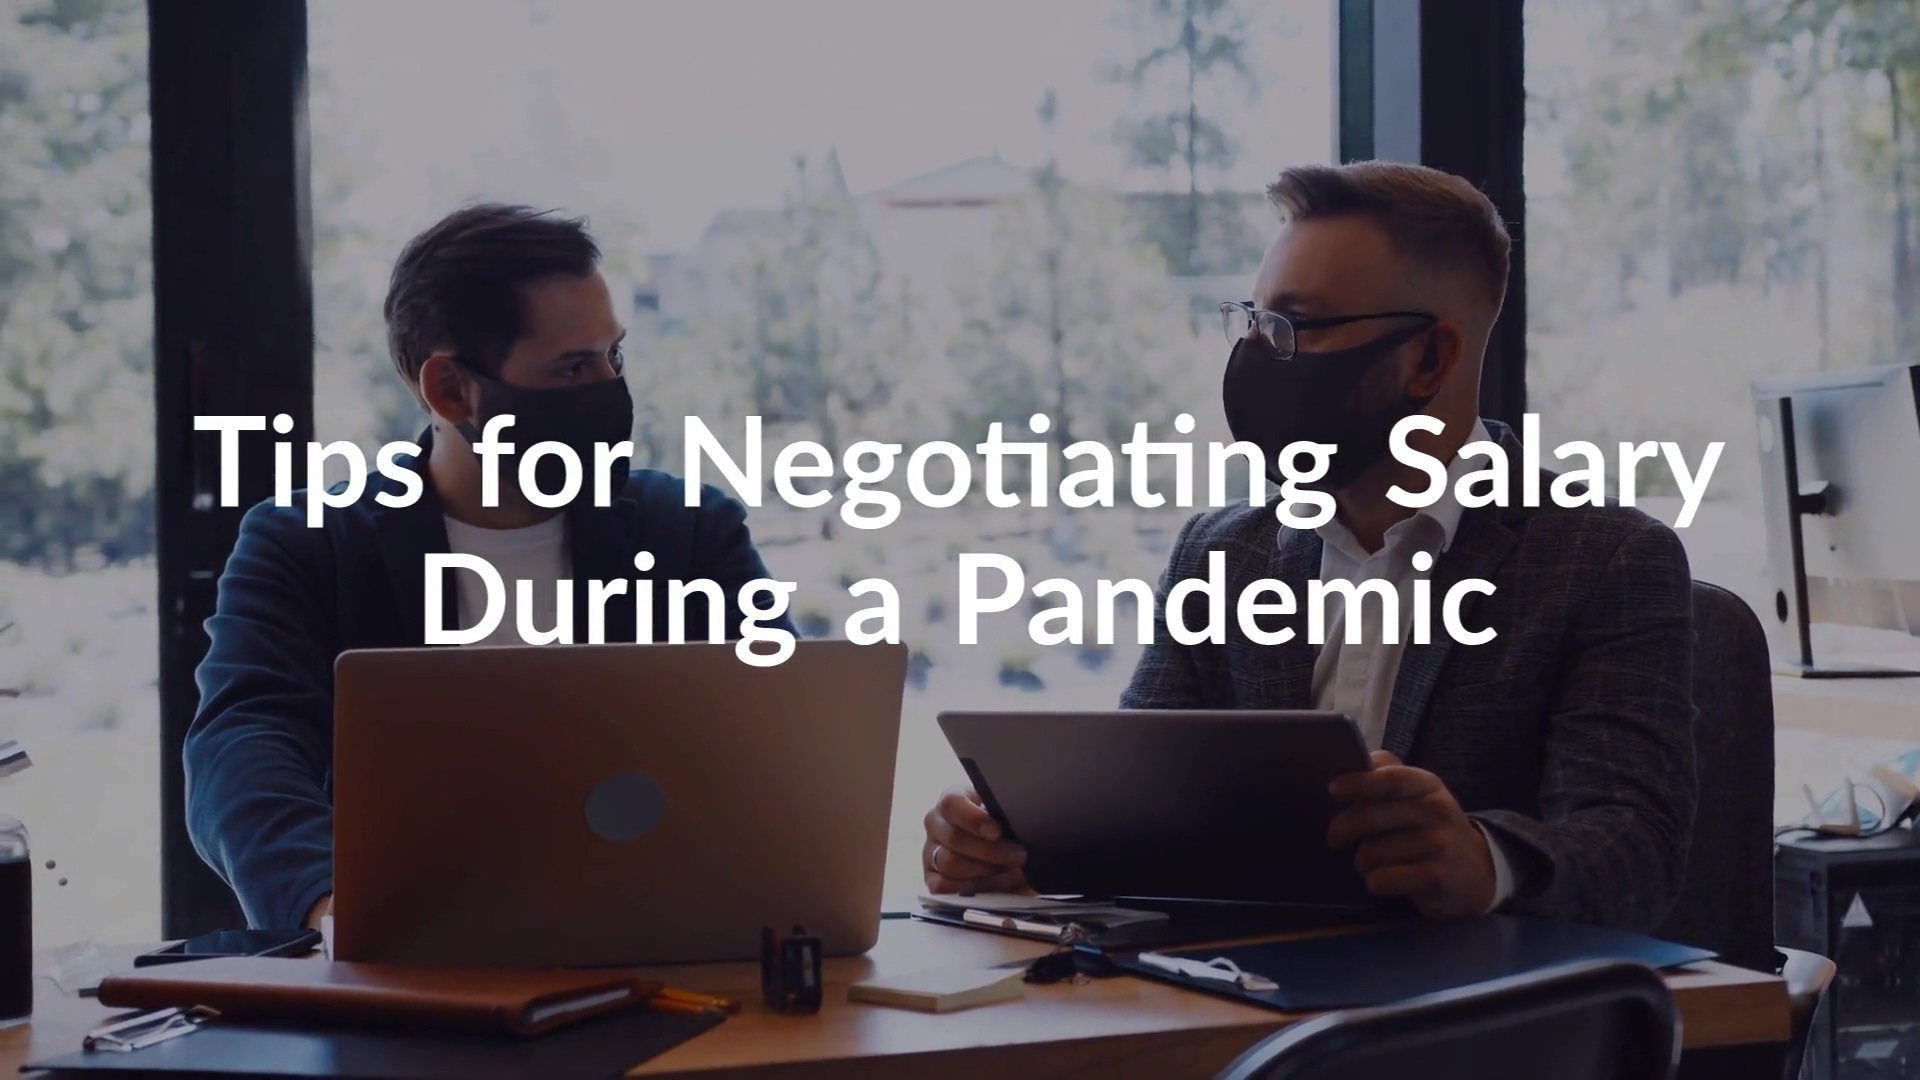 tips-for-negotiating-salary-during-pandemic